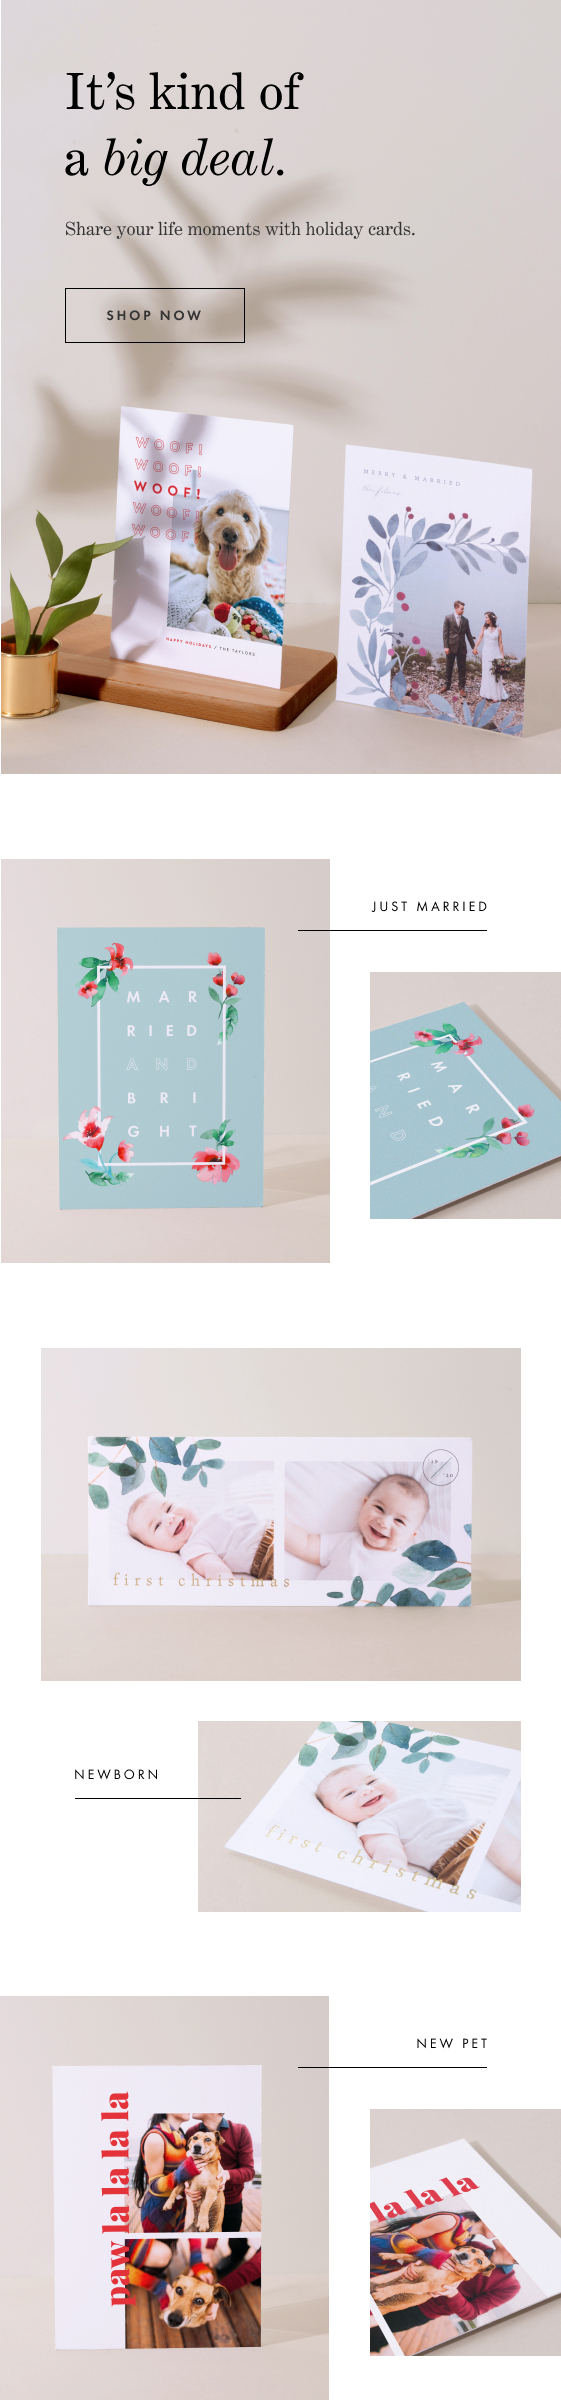 Holiday Cards for all Milestones